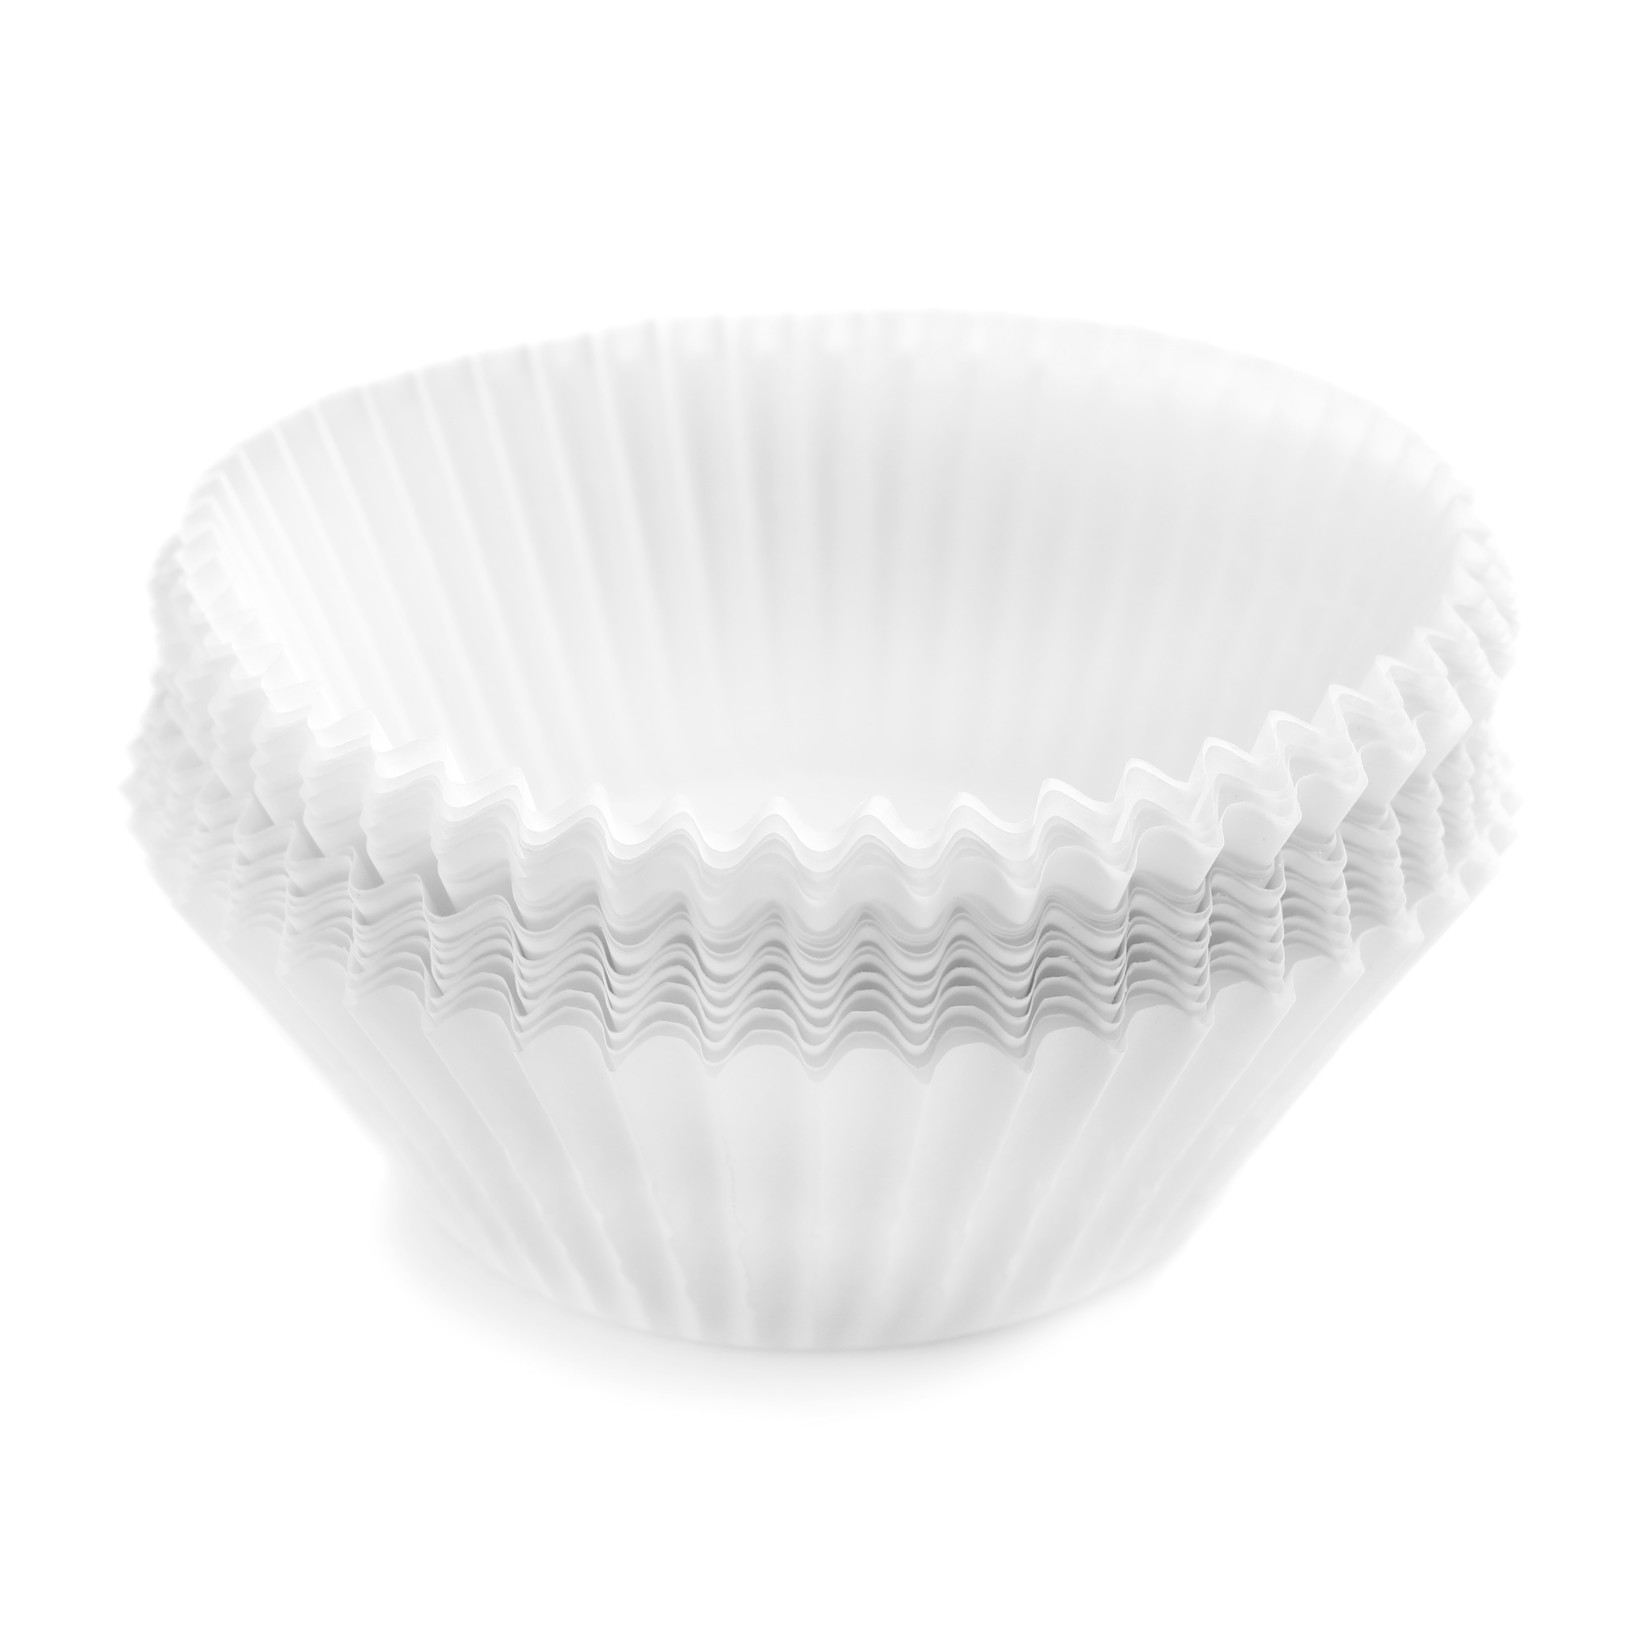 Pastry Depot Cupcake liner - 2 x 1.25 (500ct) - White